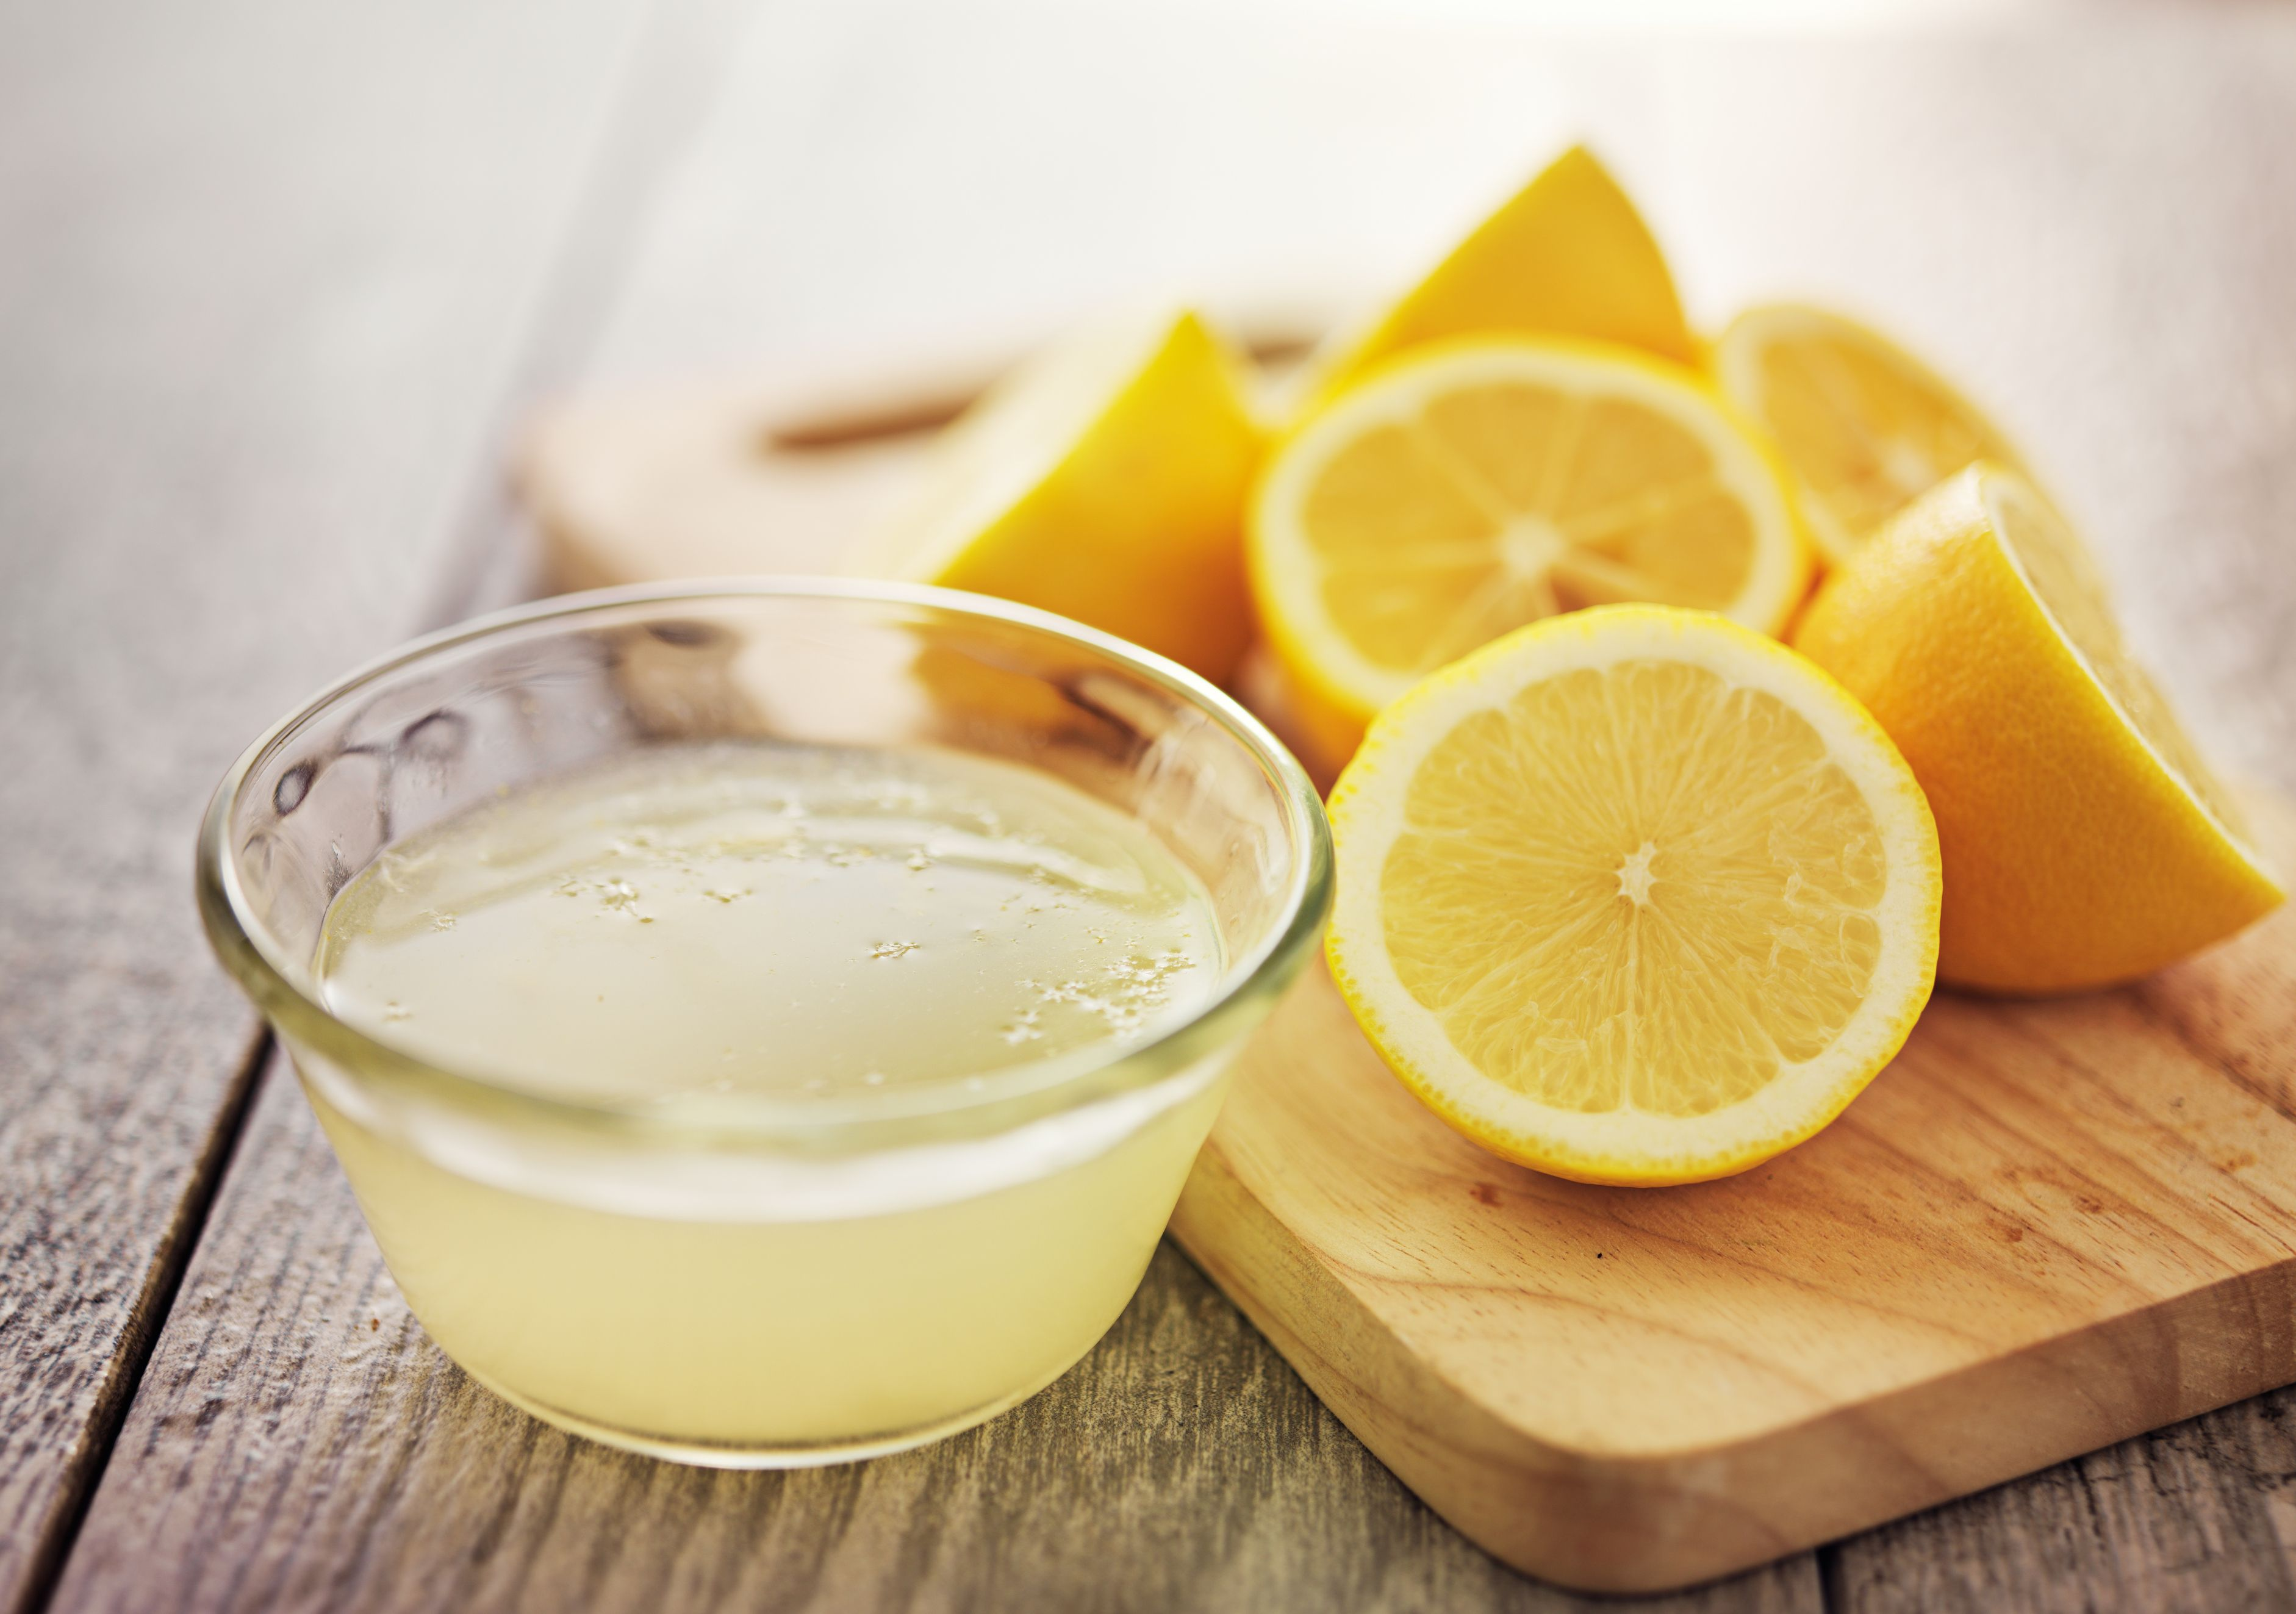 How to get rid of acne with lemon juice